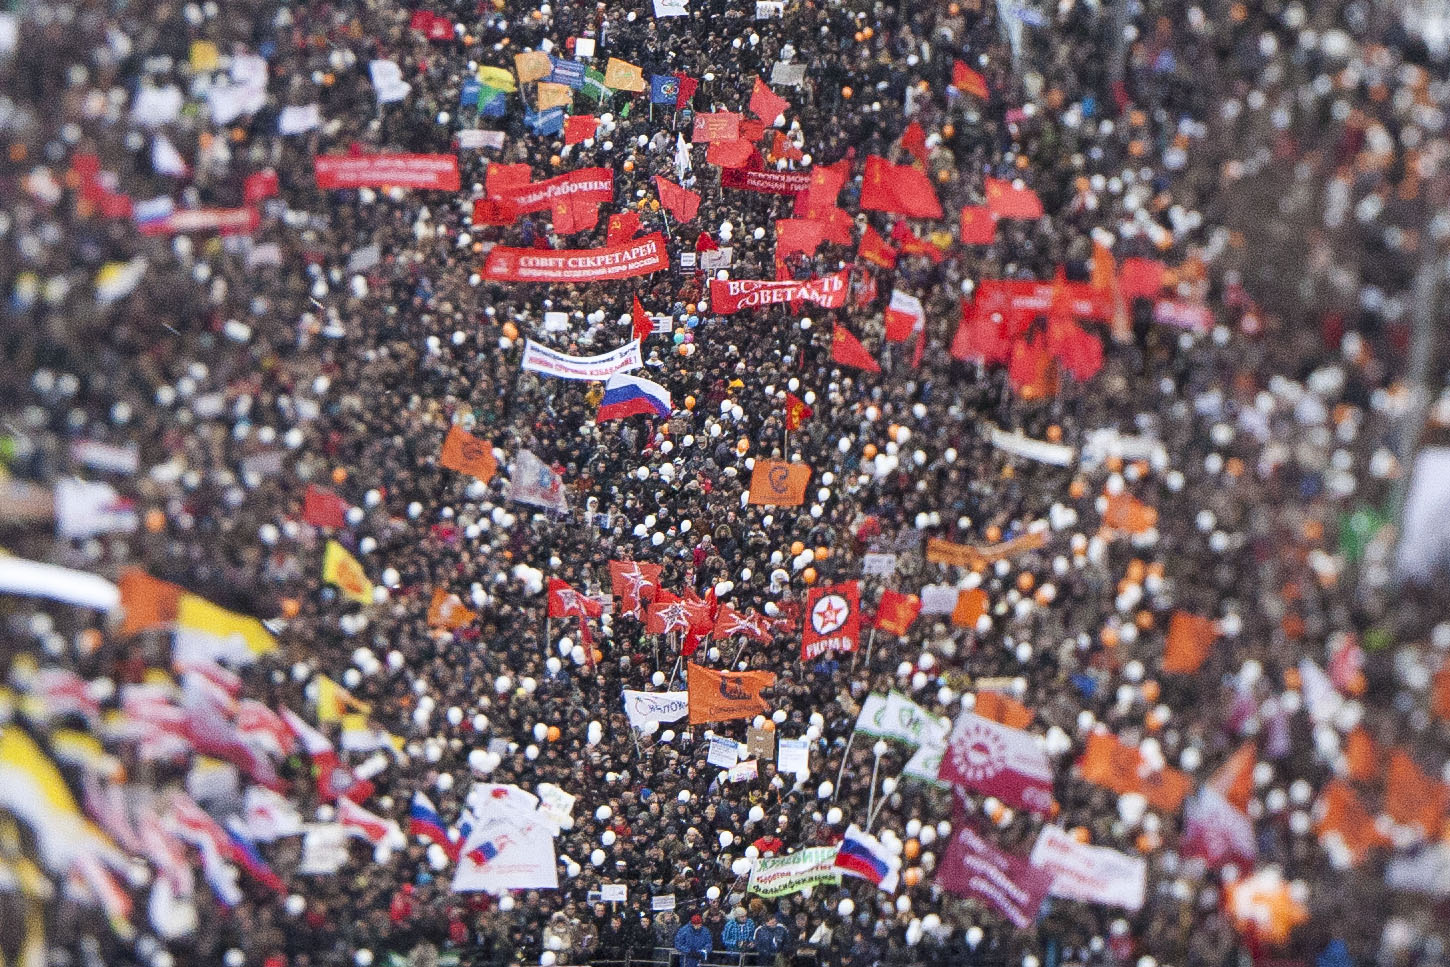 A rally at Moscow's Sakharova prospekt, second huge rally of 2011-12 winter protetst